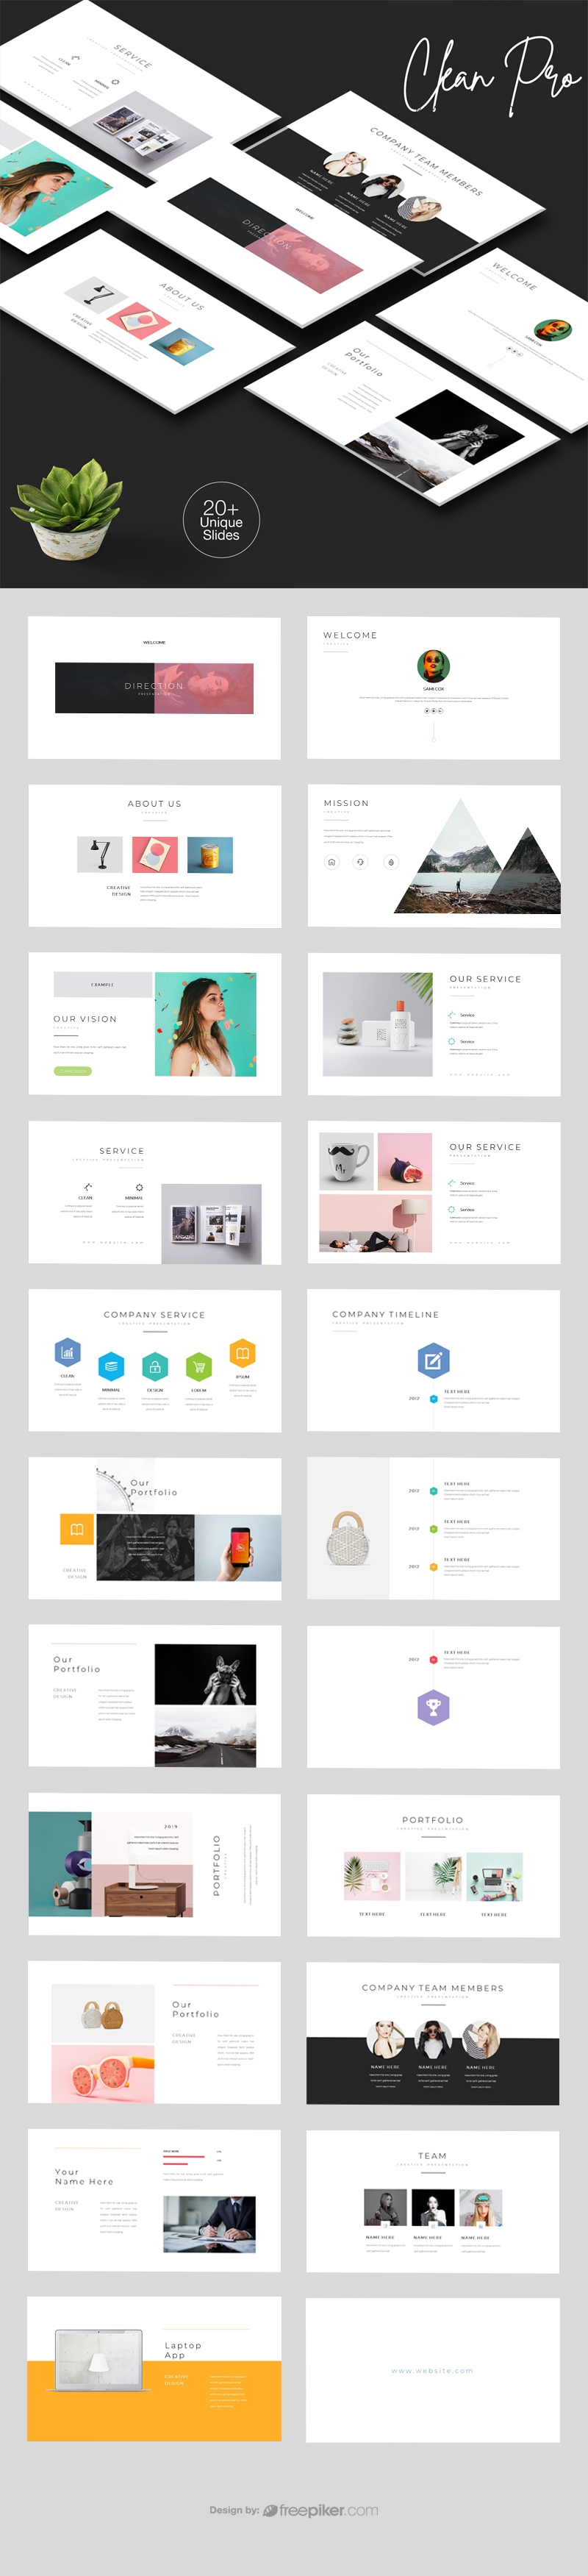 Clean Pro PowerPoint Template